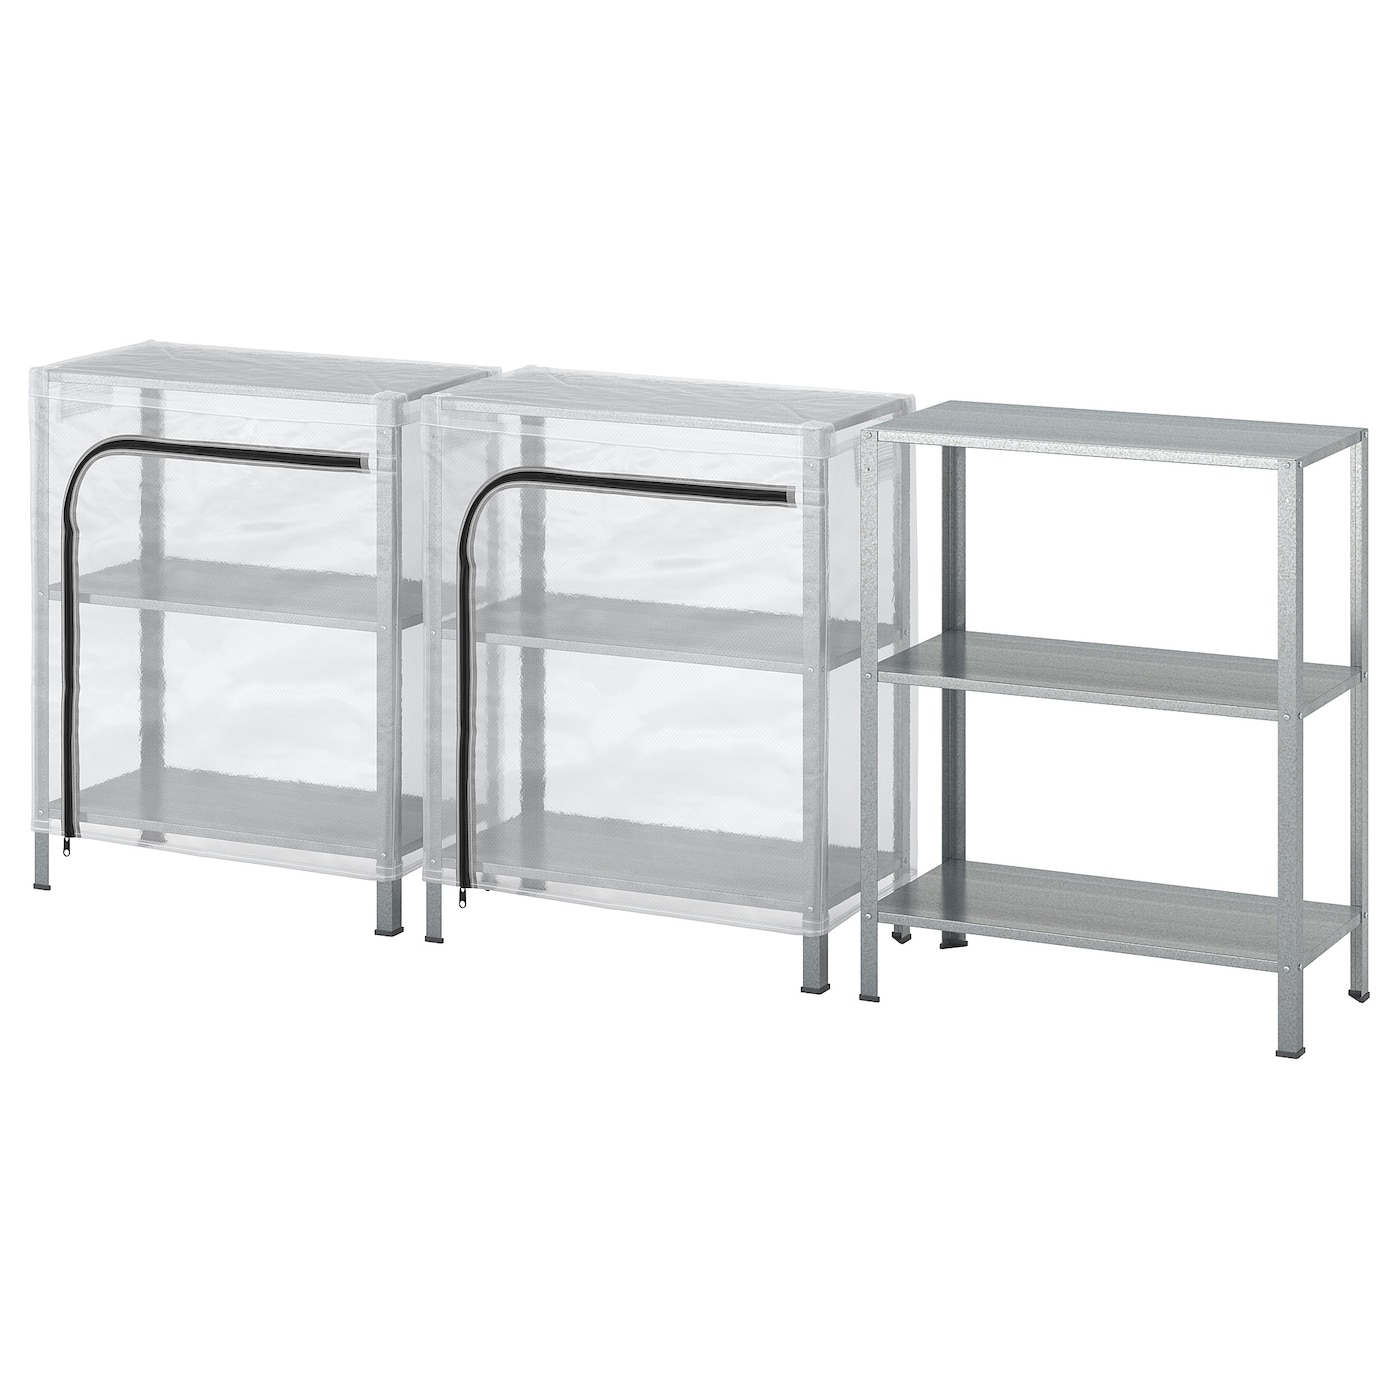 hyllis shelving units with covers clear ikea